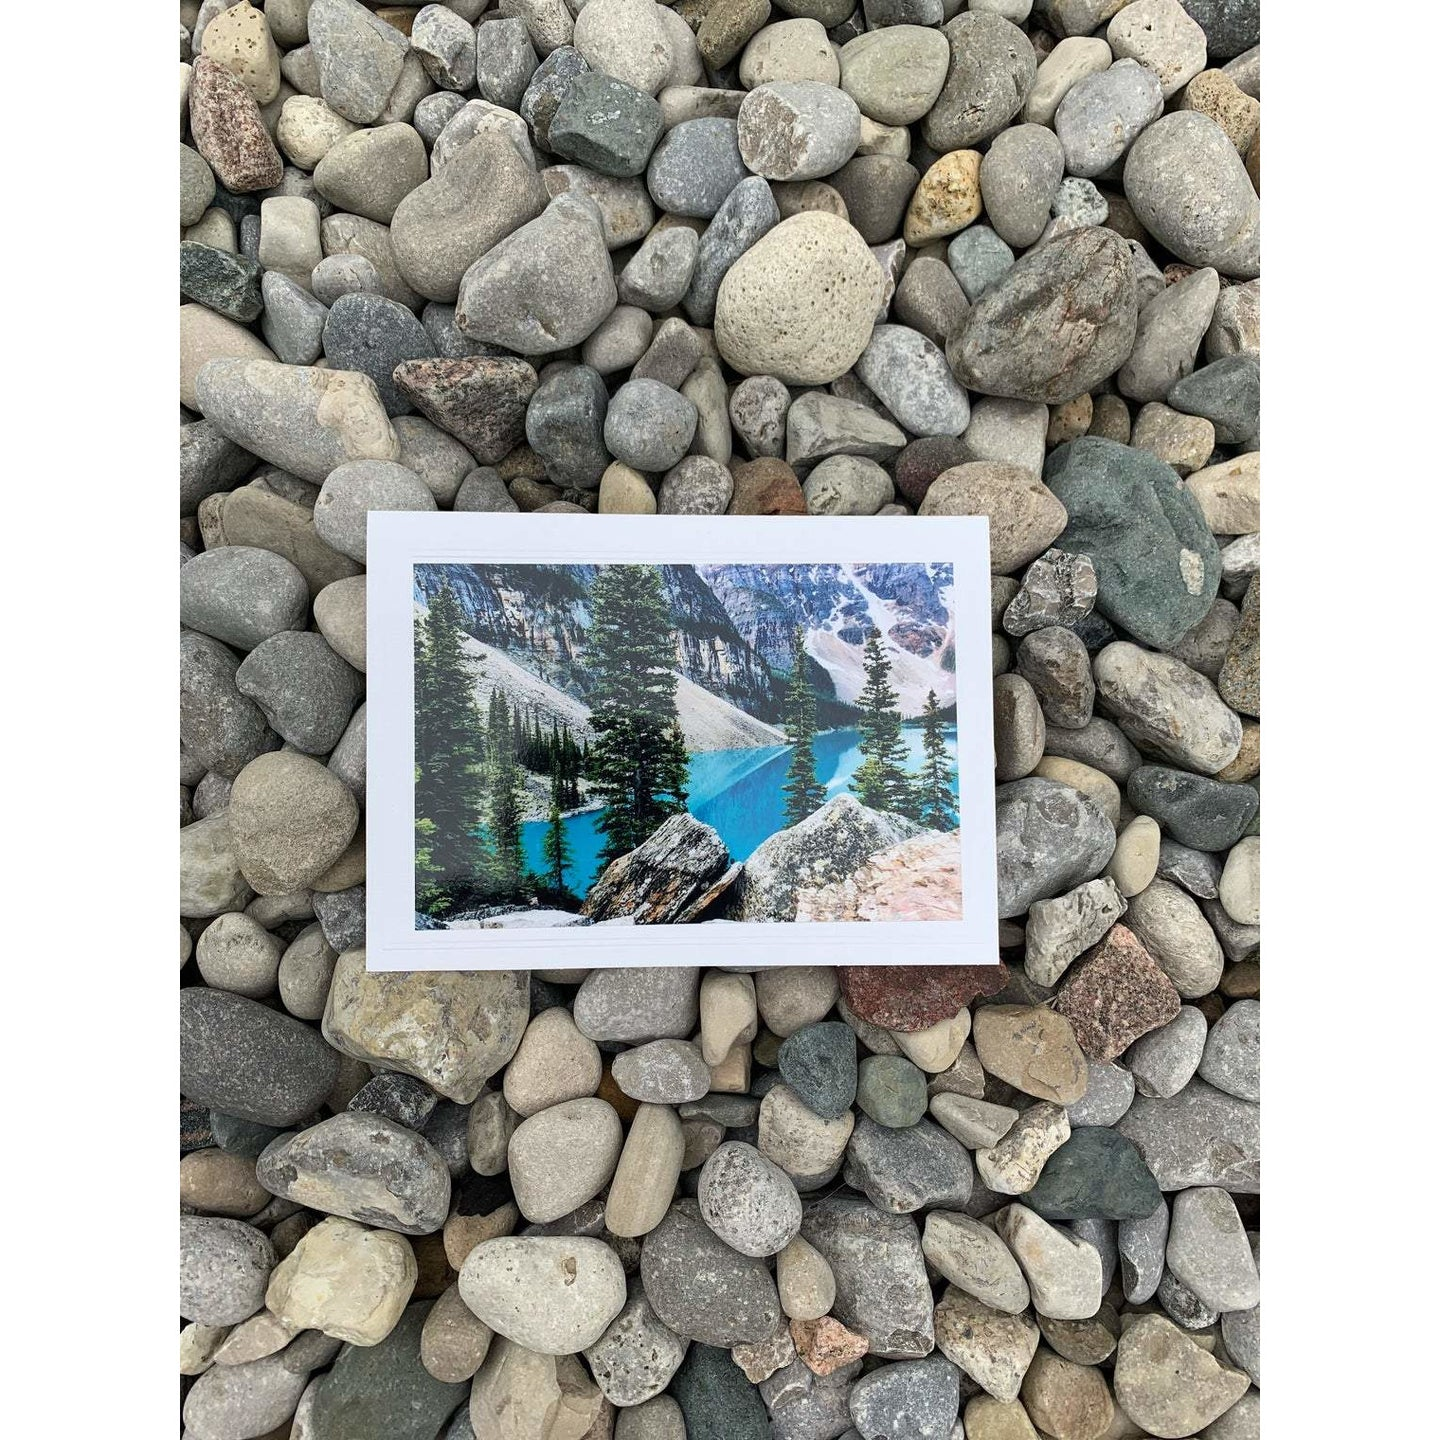 Beautiful Lookout at the Unforgettable Moraine Lake, Alberta, Note Card, Blank Inside